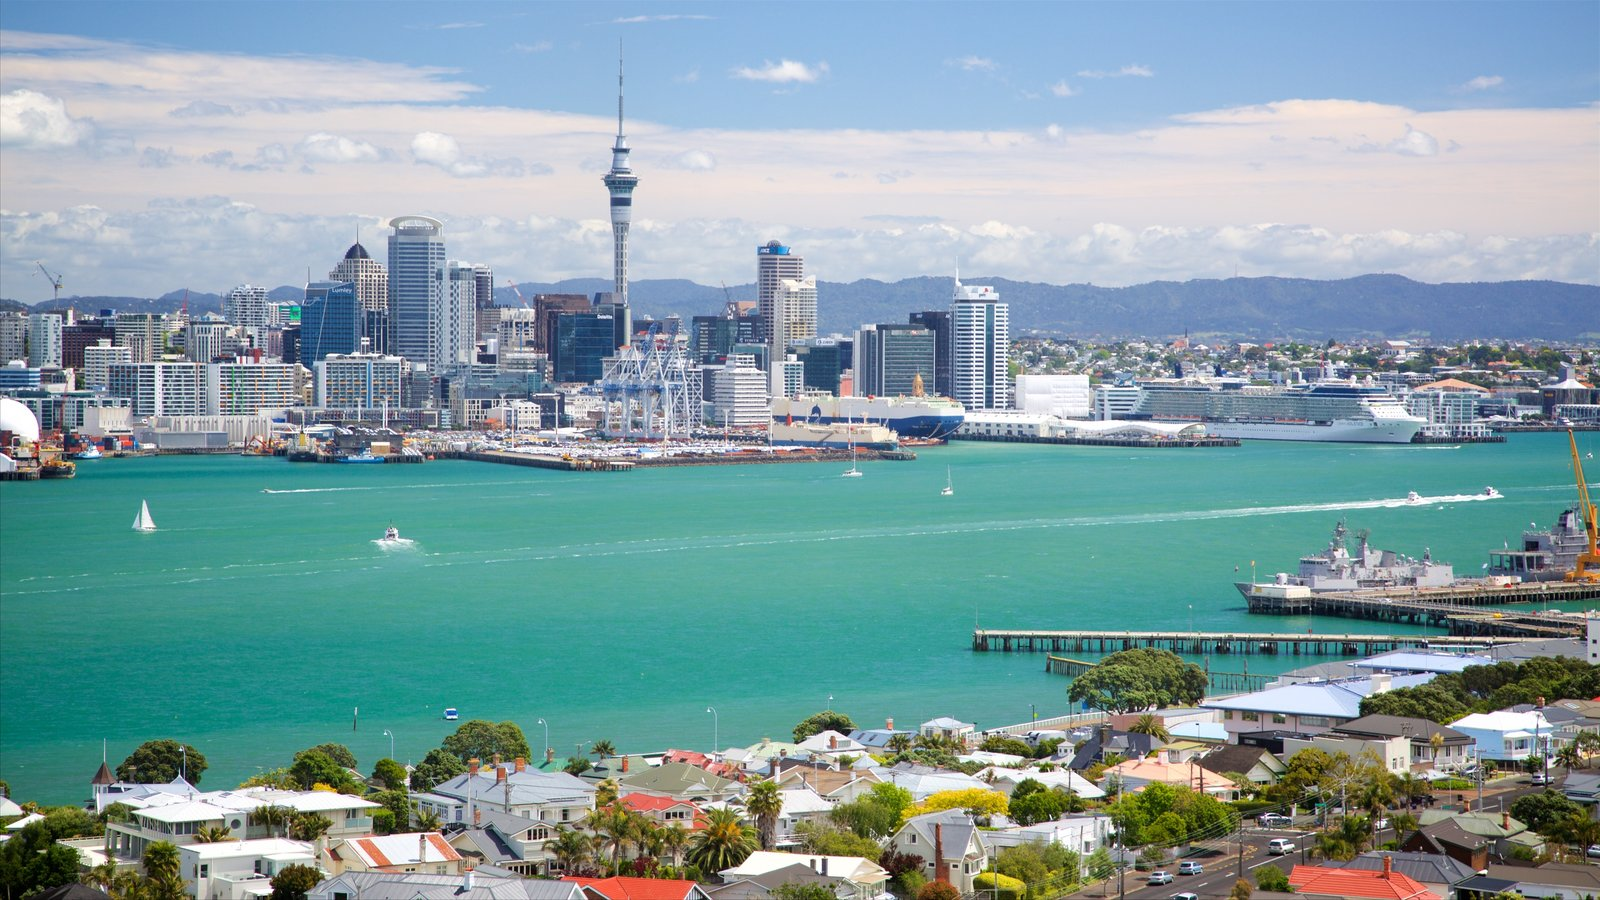 Devonport which includes a city, a river or creek and skyline